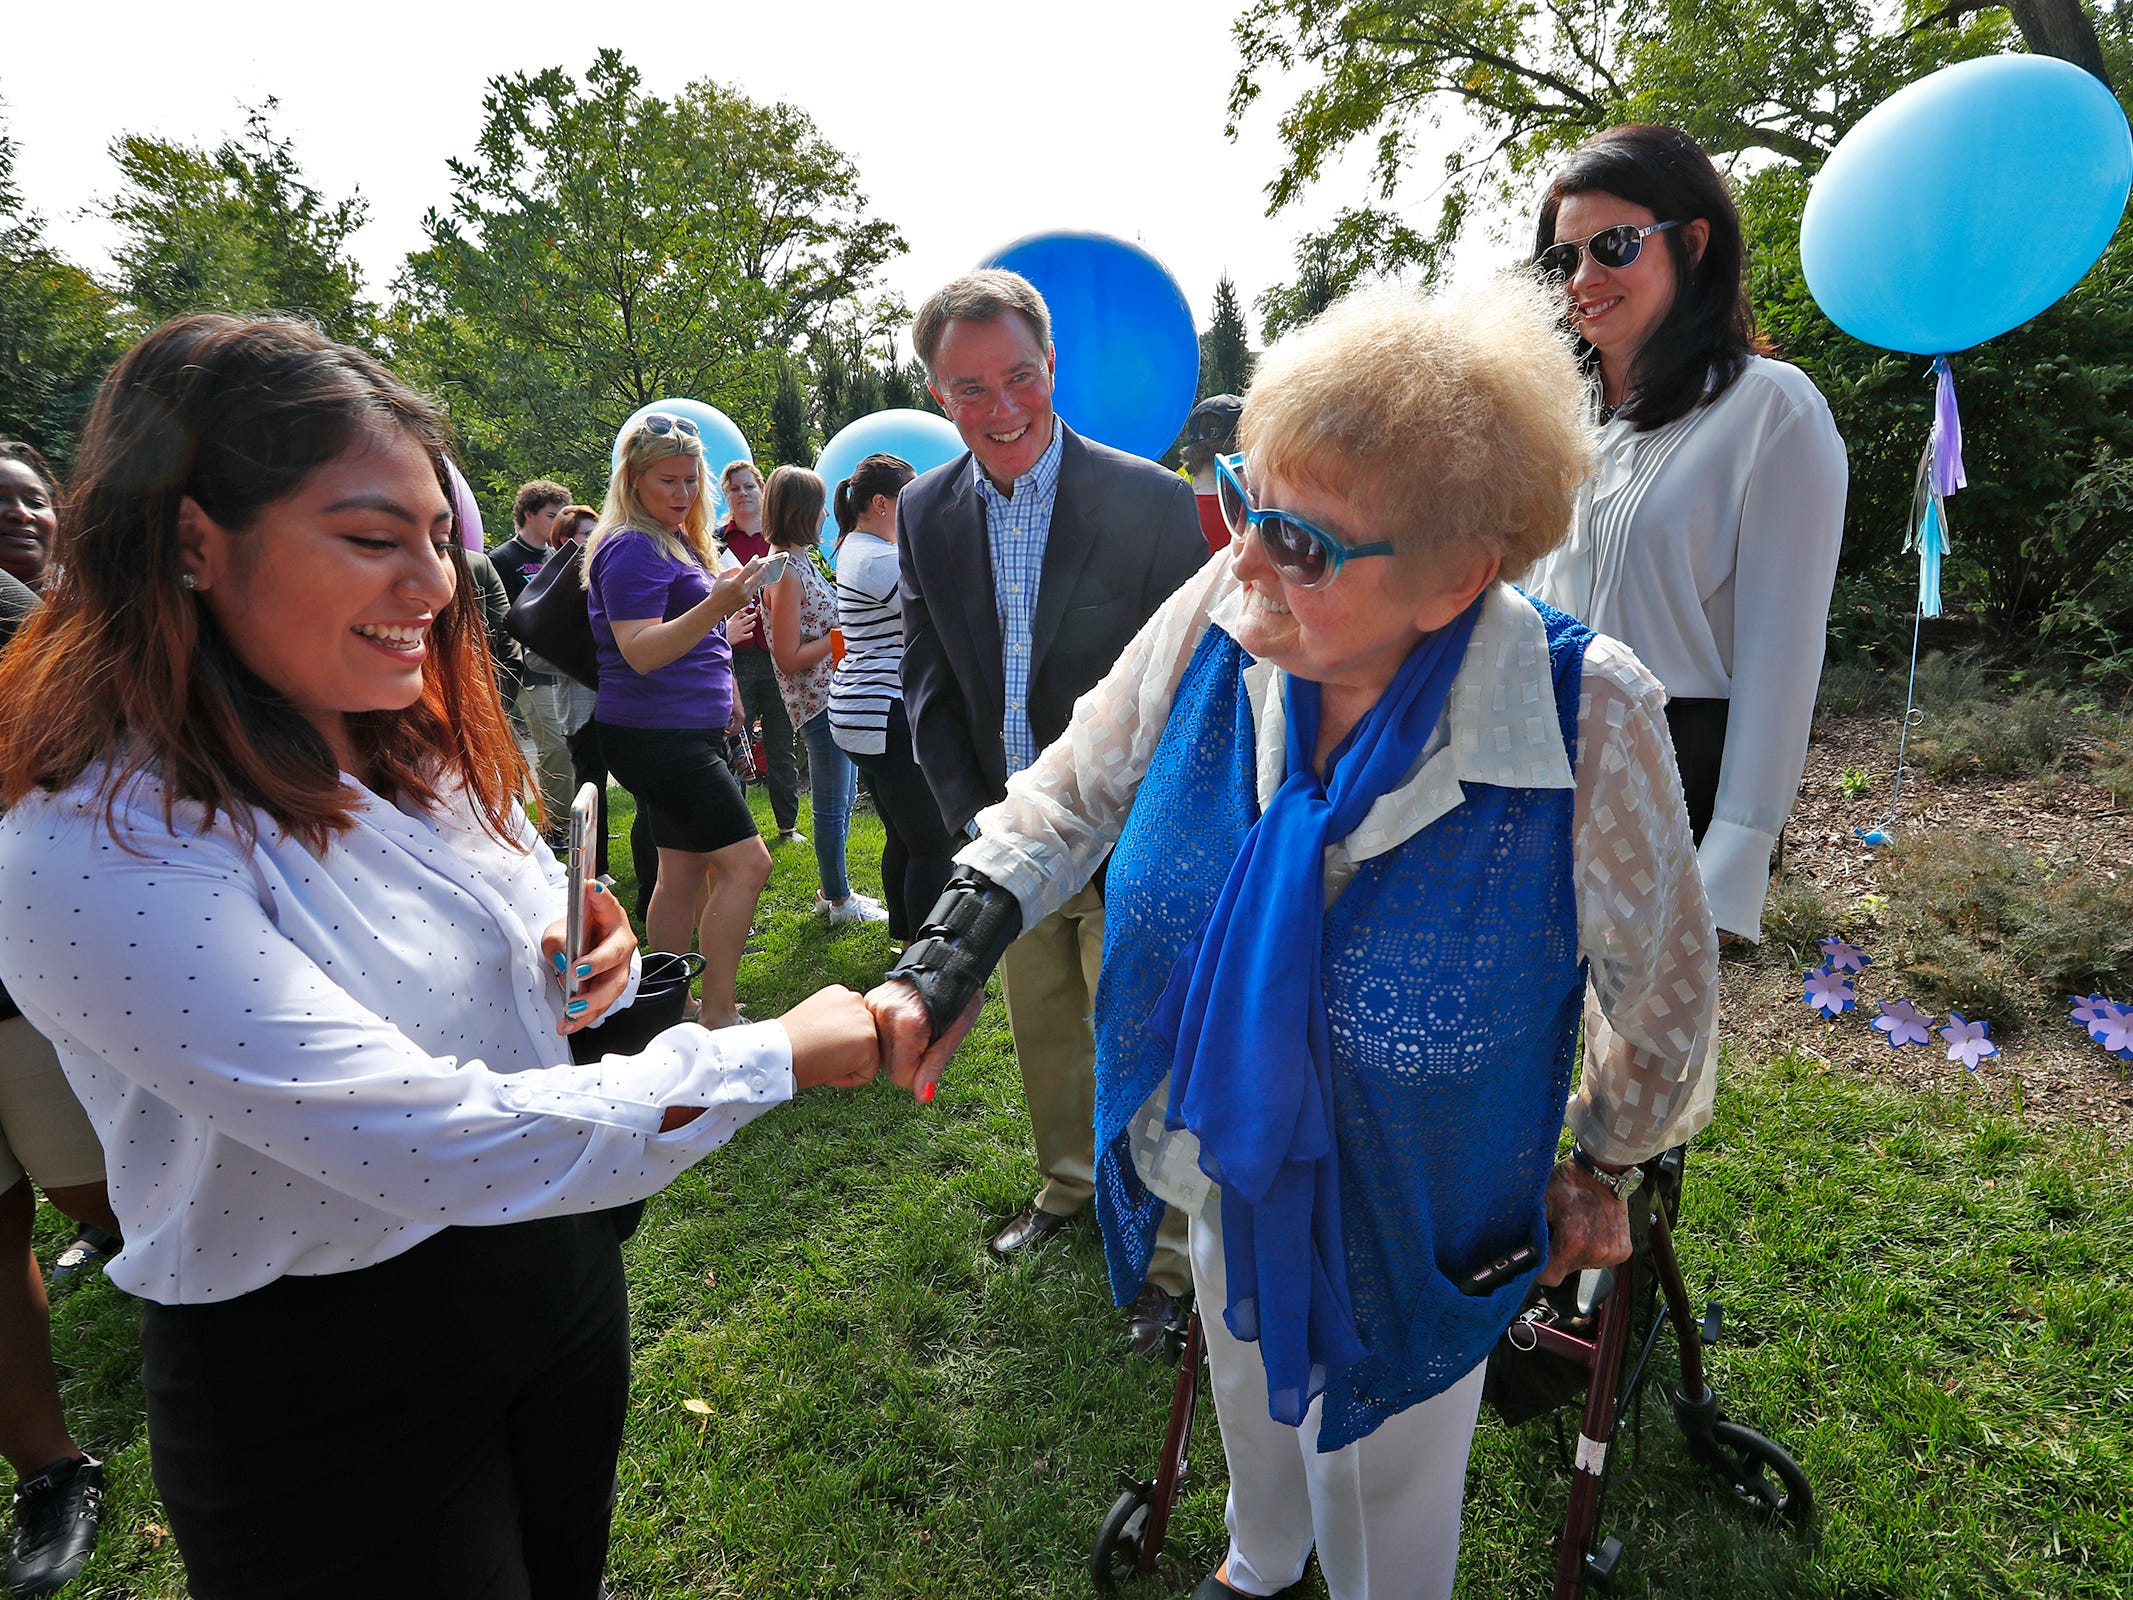 """Eva Kor, right, fist bumps with students after they planted flower seeds at the Eva Kor Peace Garden at Newfields, Monday, Sept. 17, 2018.  Students viewed the documentary """"Eva,"""" about Holocaust survivor Eva Kor, and then helped in the planting of the Peace Garden.  Kor also spoke with the students, asking them to think of one thing to make the world better."""